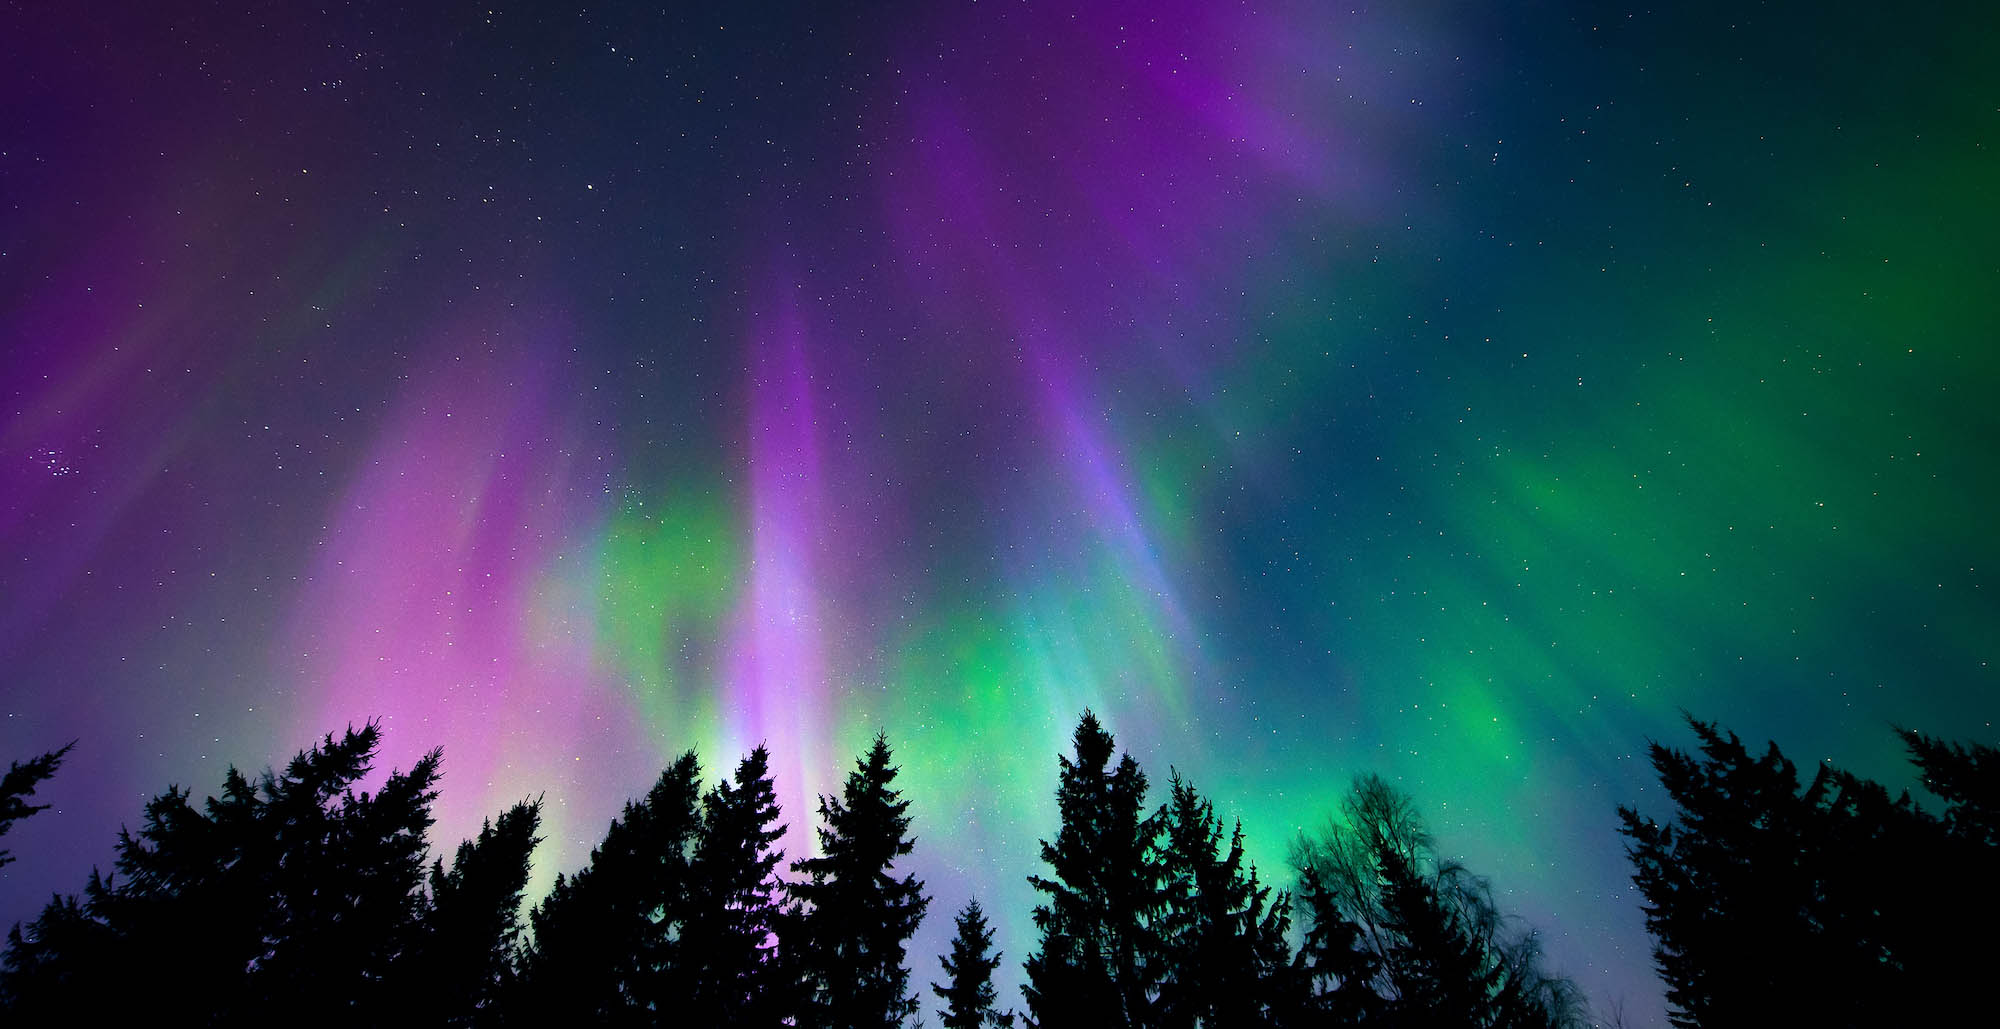 The hues of the northern lights